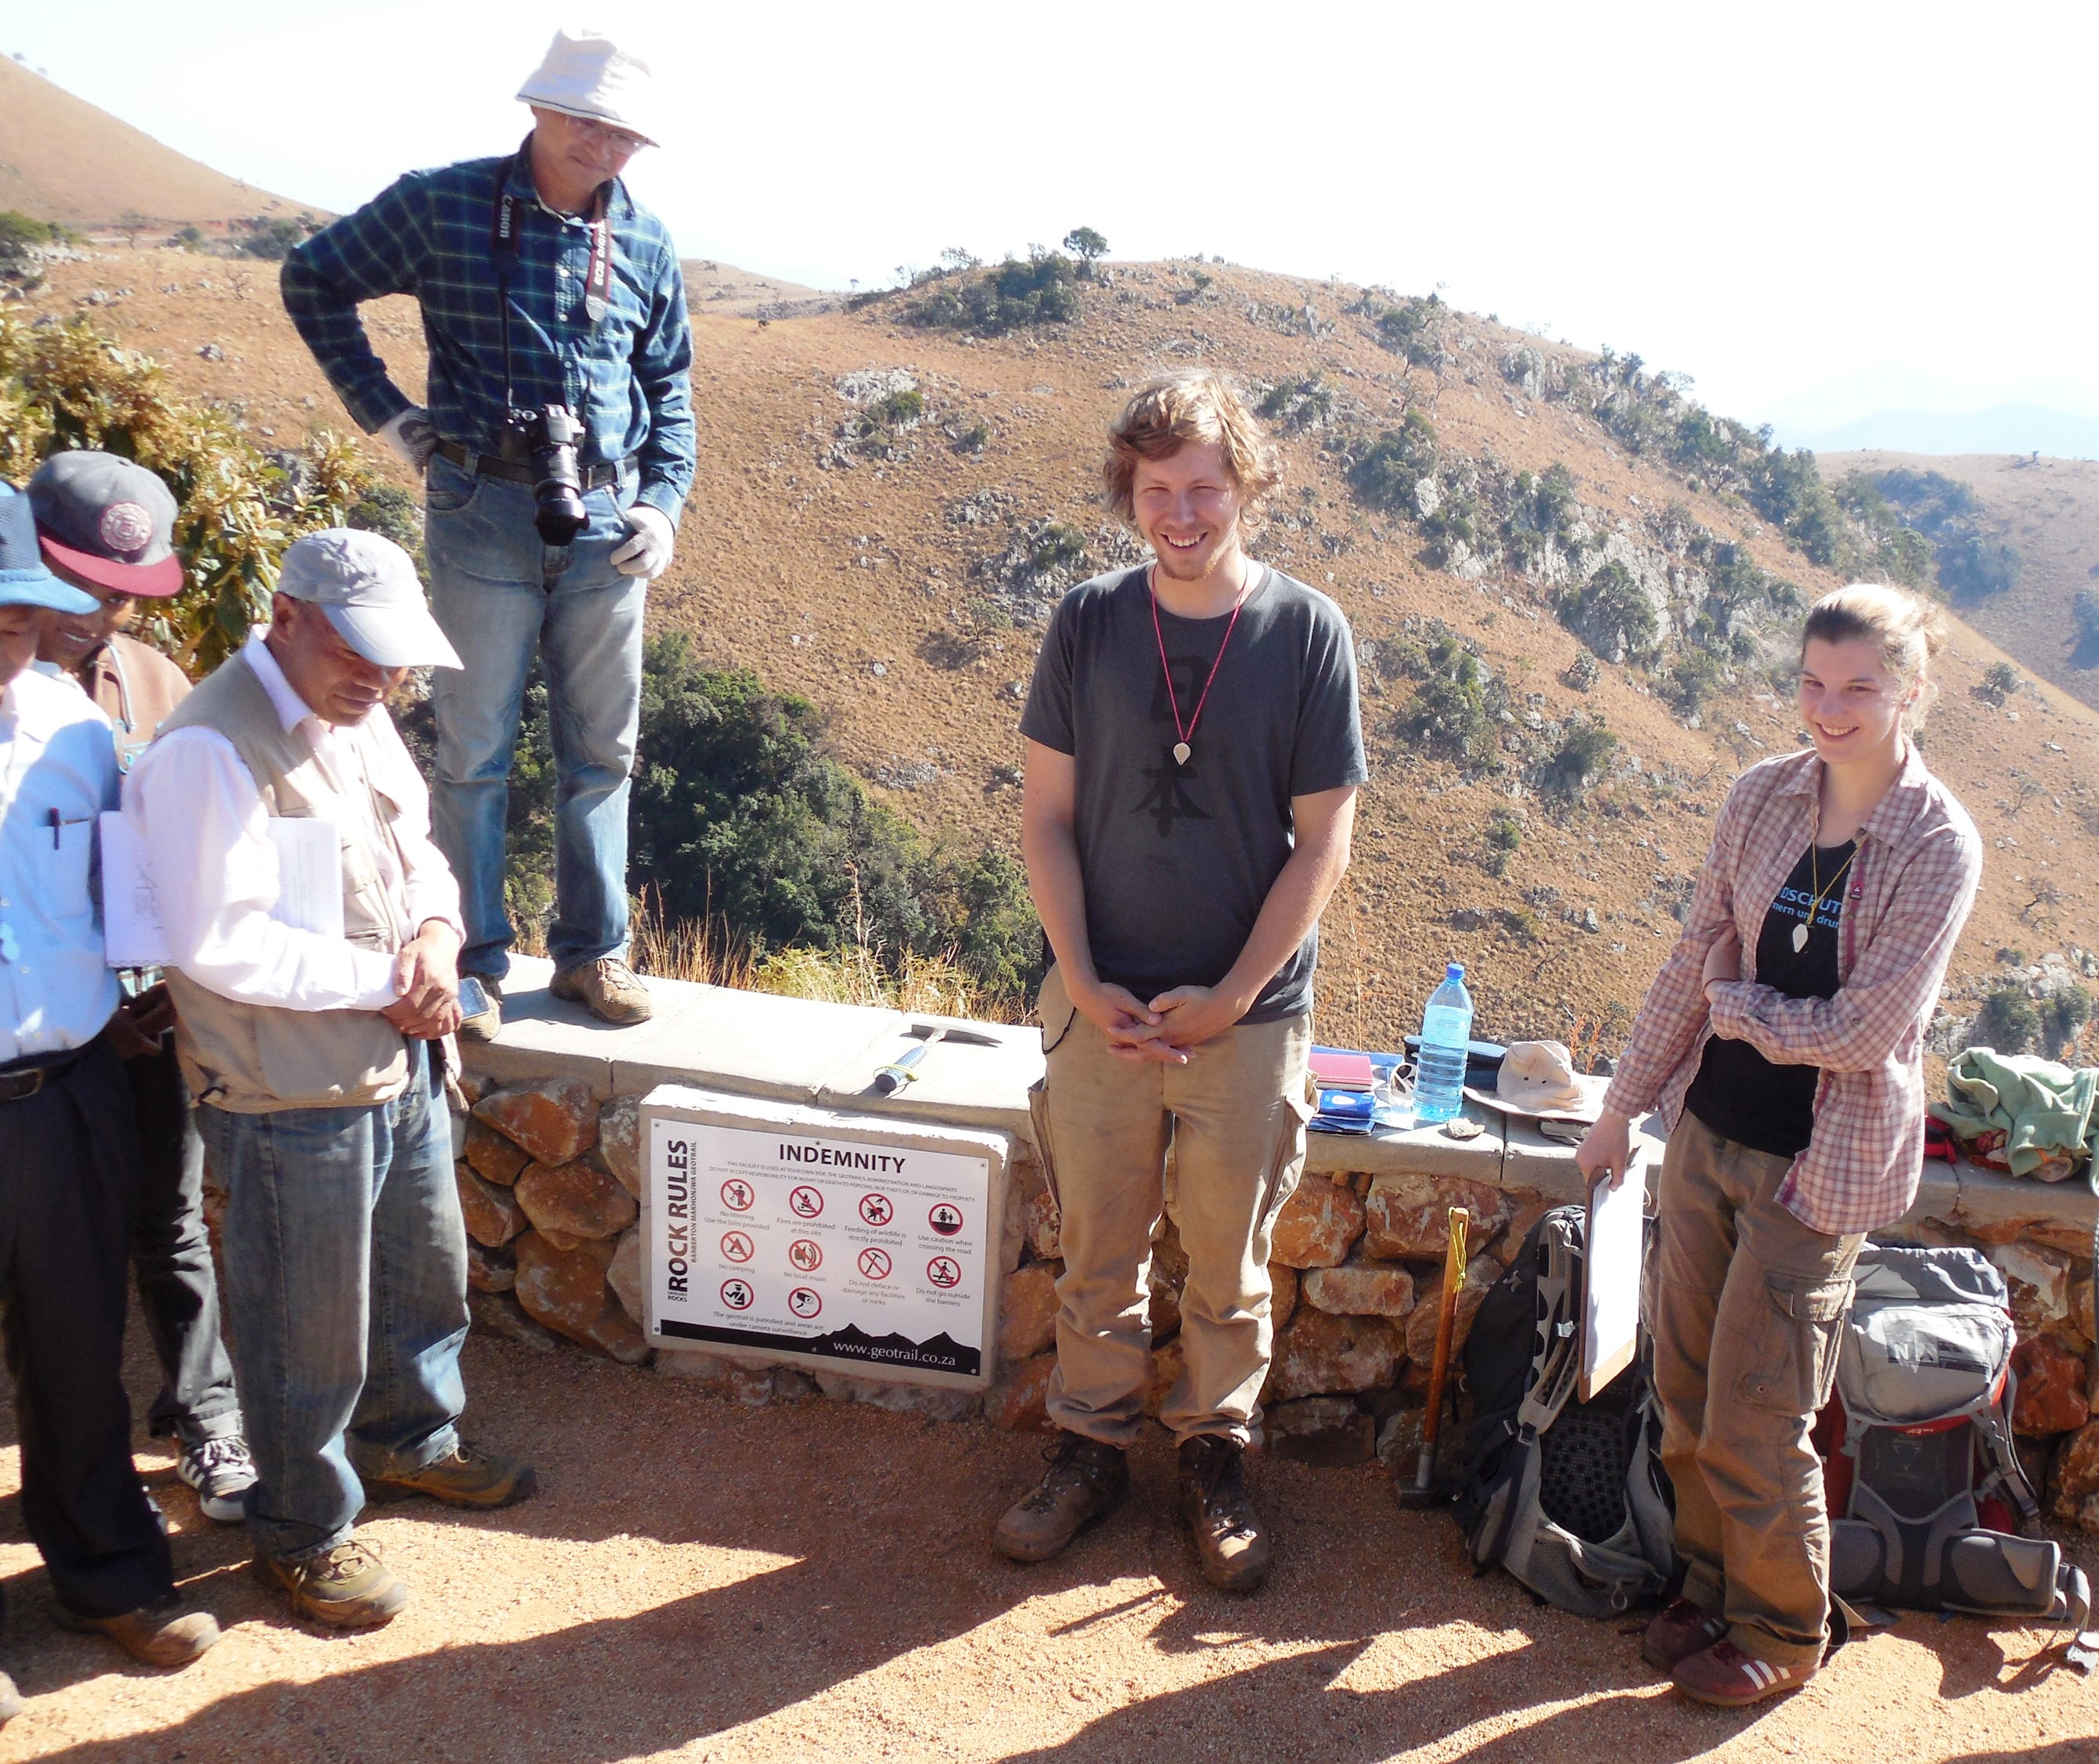 Saskia Bläsing and Marc Grund discussing their work with a group of Japanese geologists on the Barberton Makhonjwa Geotrail. (photo courtesy of Prof C. Heubeck. )